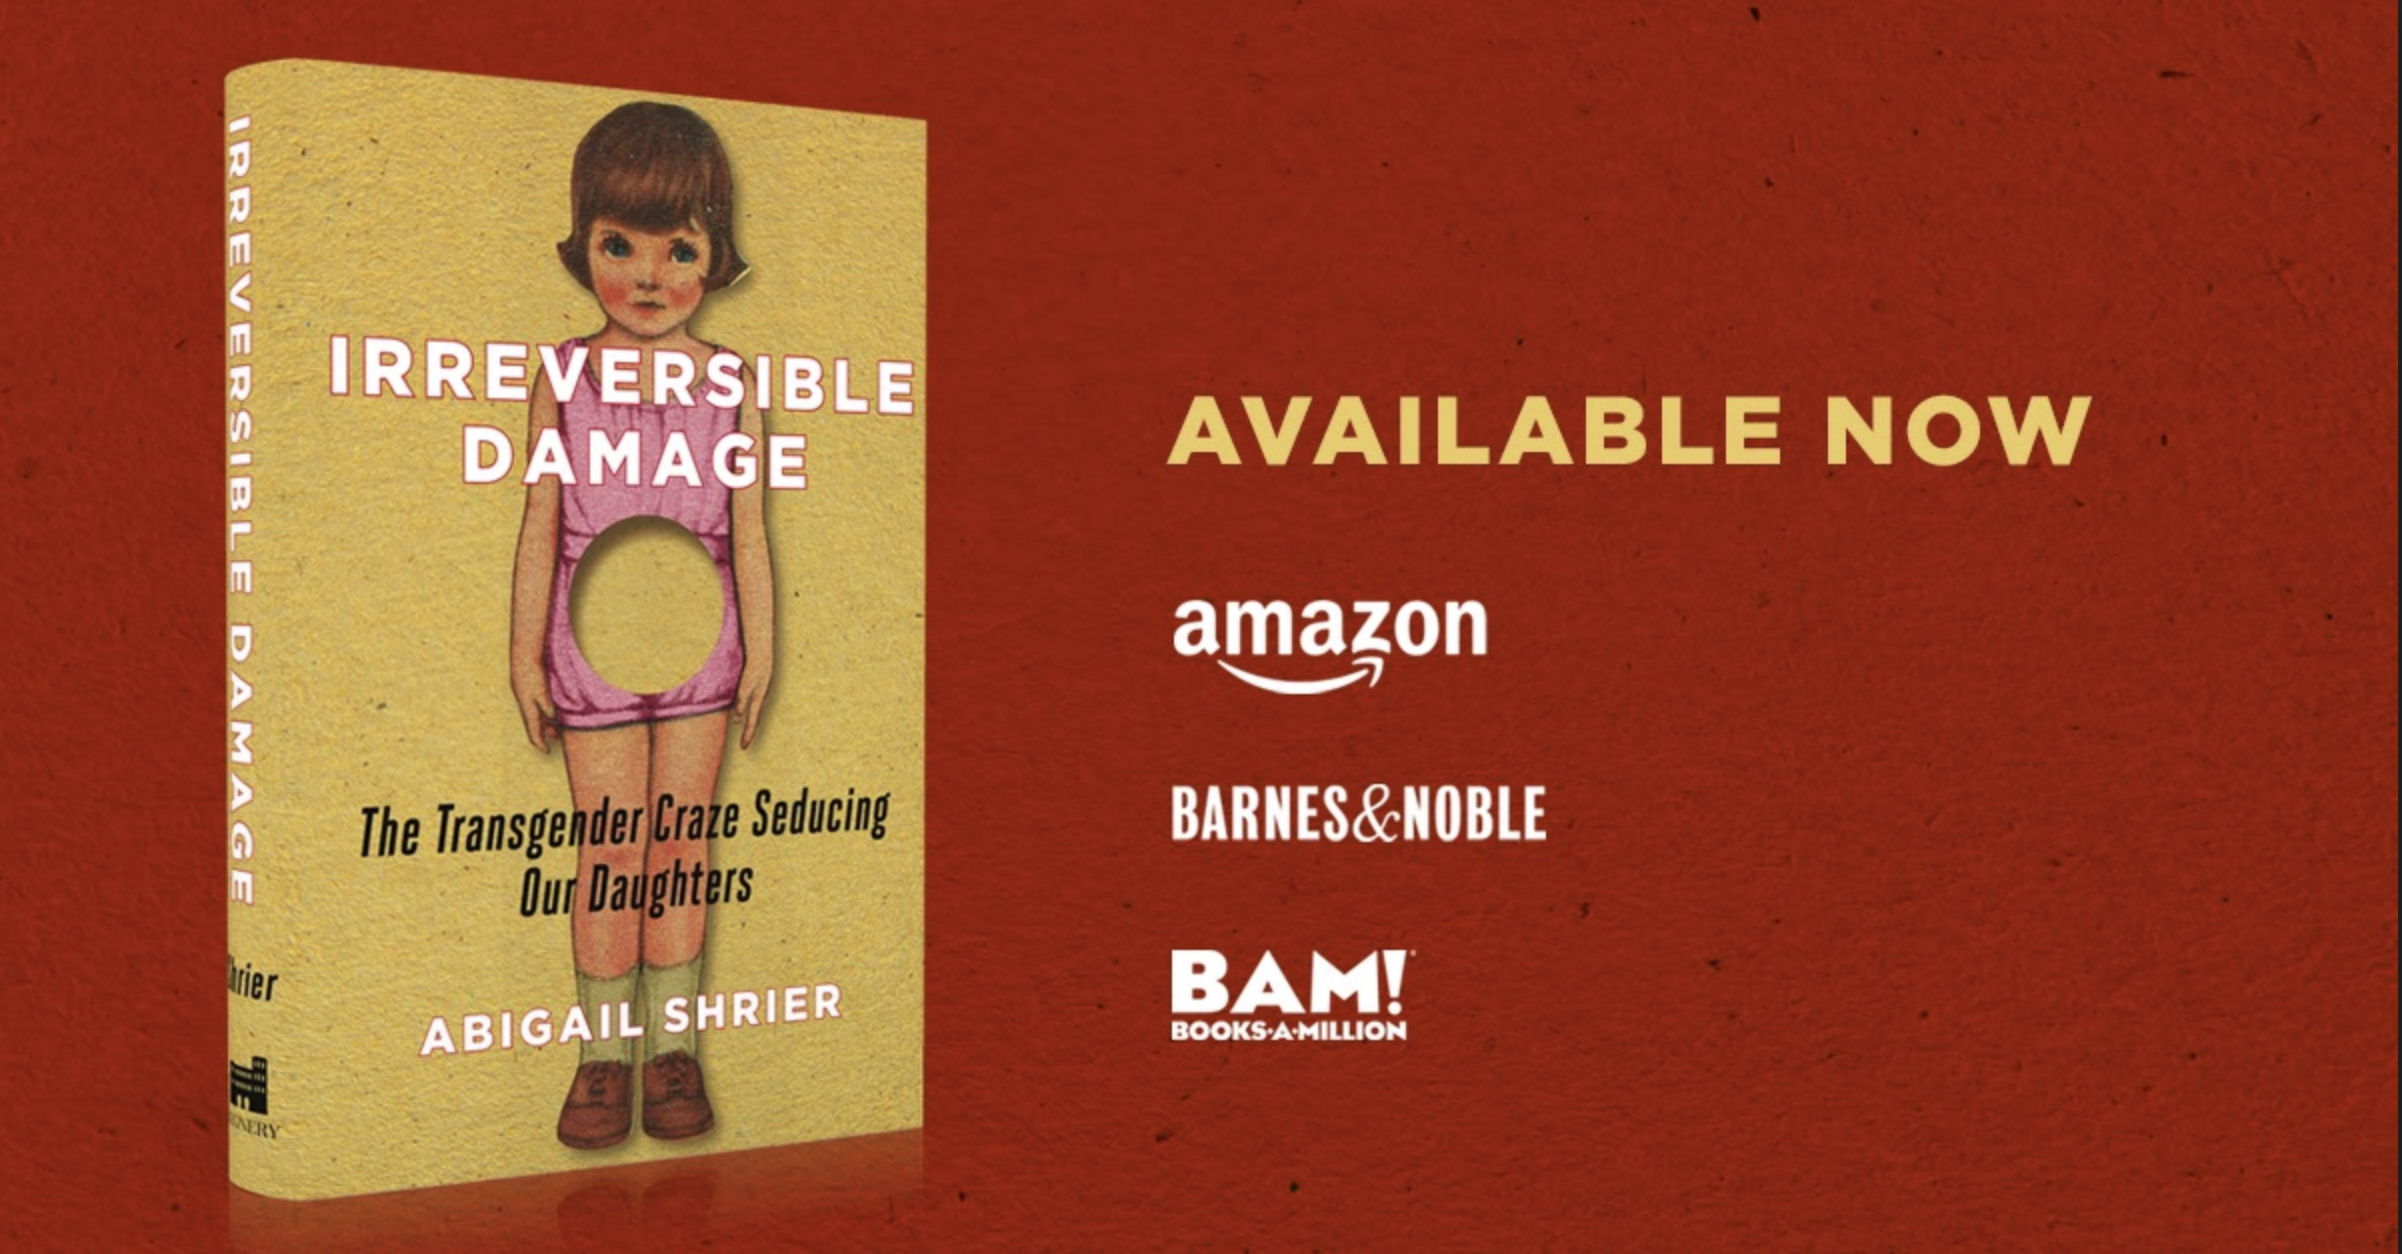 "Brandon Showalter Reviews Abigail Shrier's New Book ""Irreversible Damage: The Transgender Craze Seducing Our Daughters"""